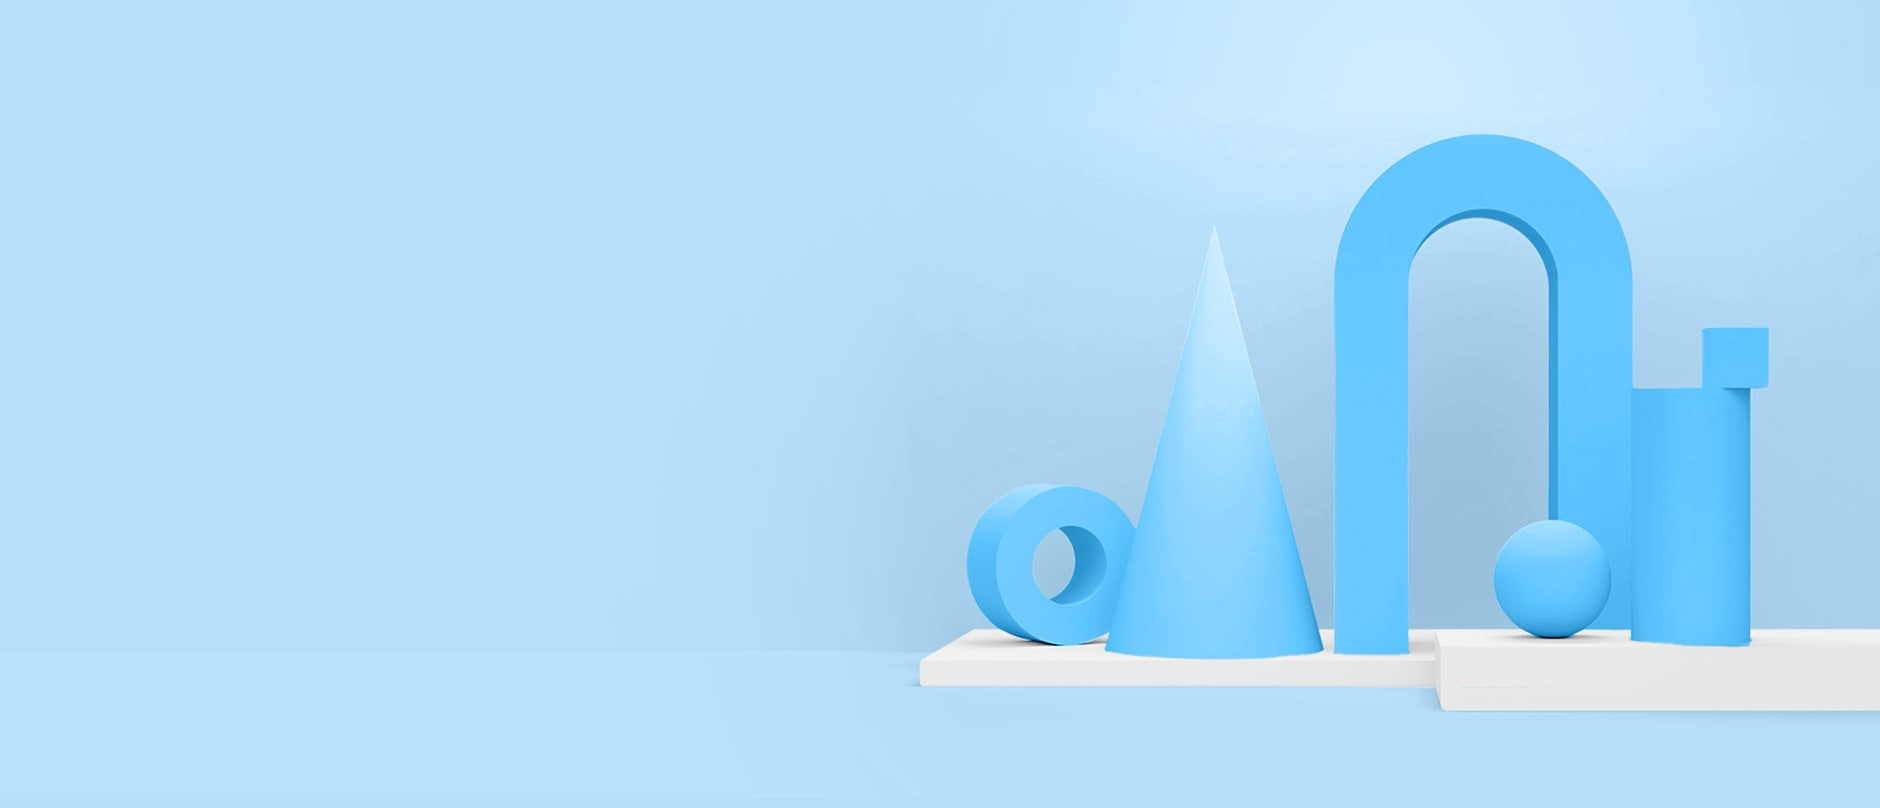 blue 3D shapes sitting on white platform with blue background